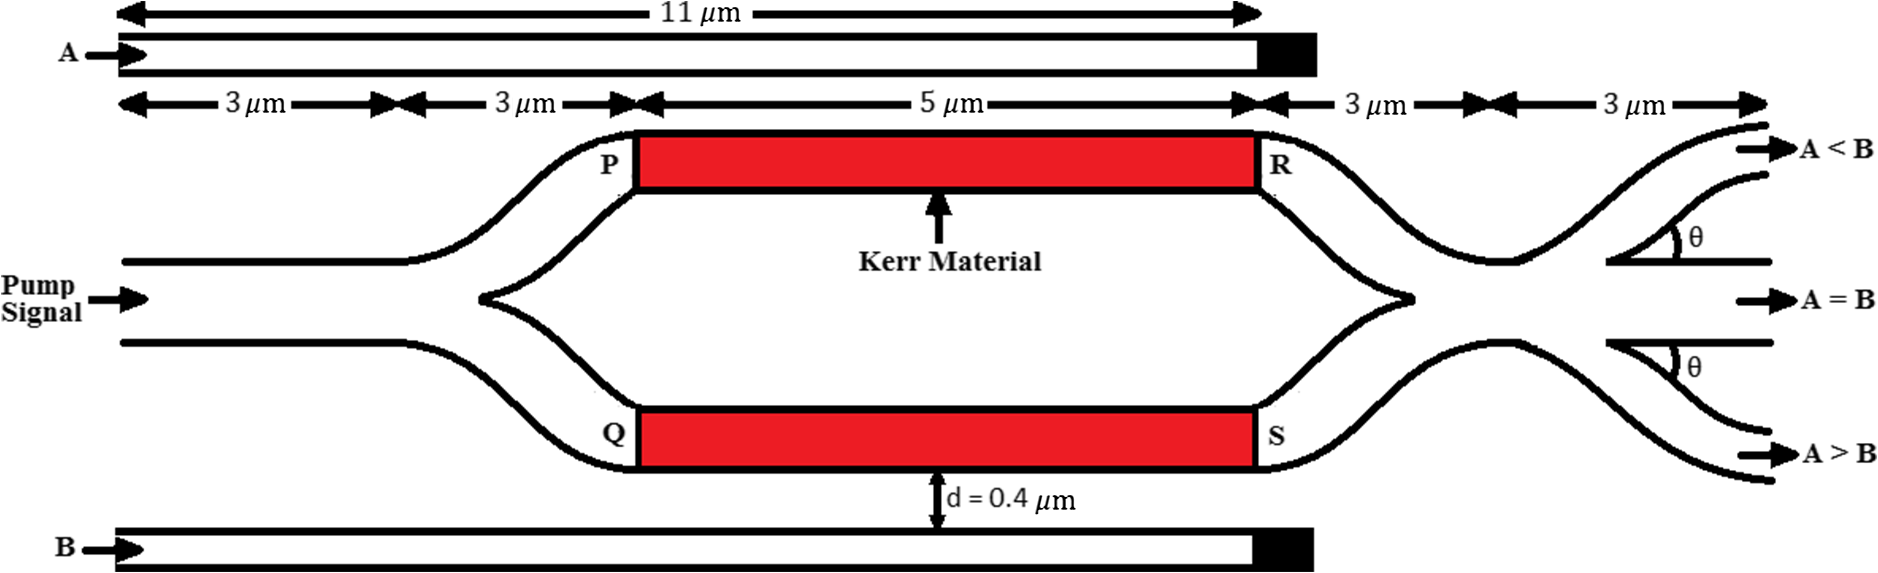 hight resolution of 2 schematic of one bit magnitude comparator oe 56 12 121908 f002 png